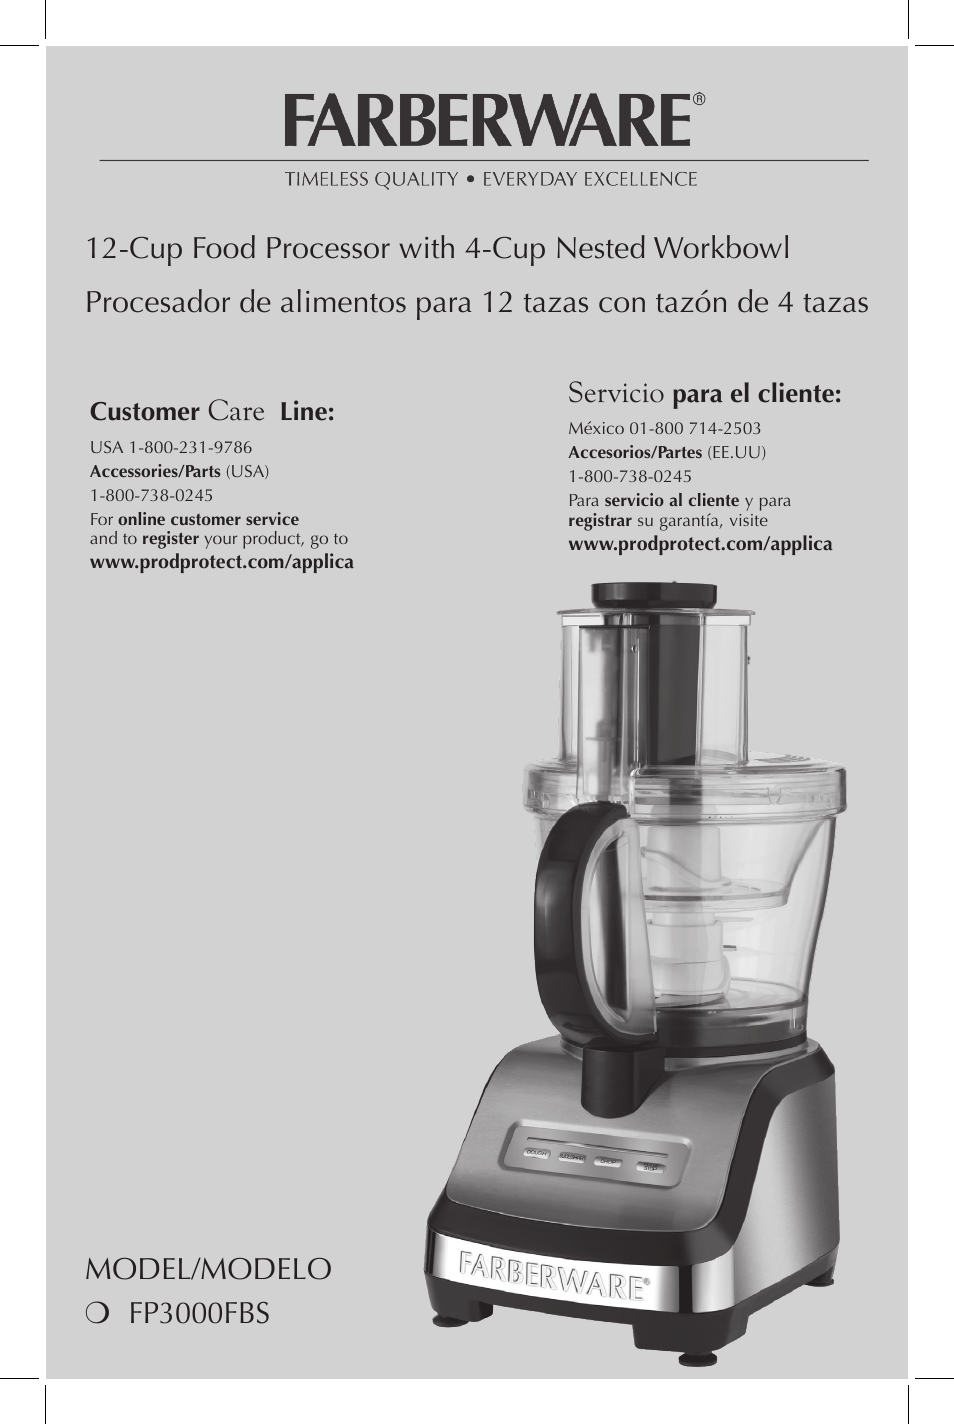 Farberware Food Processor Manual